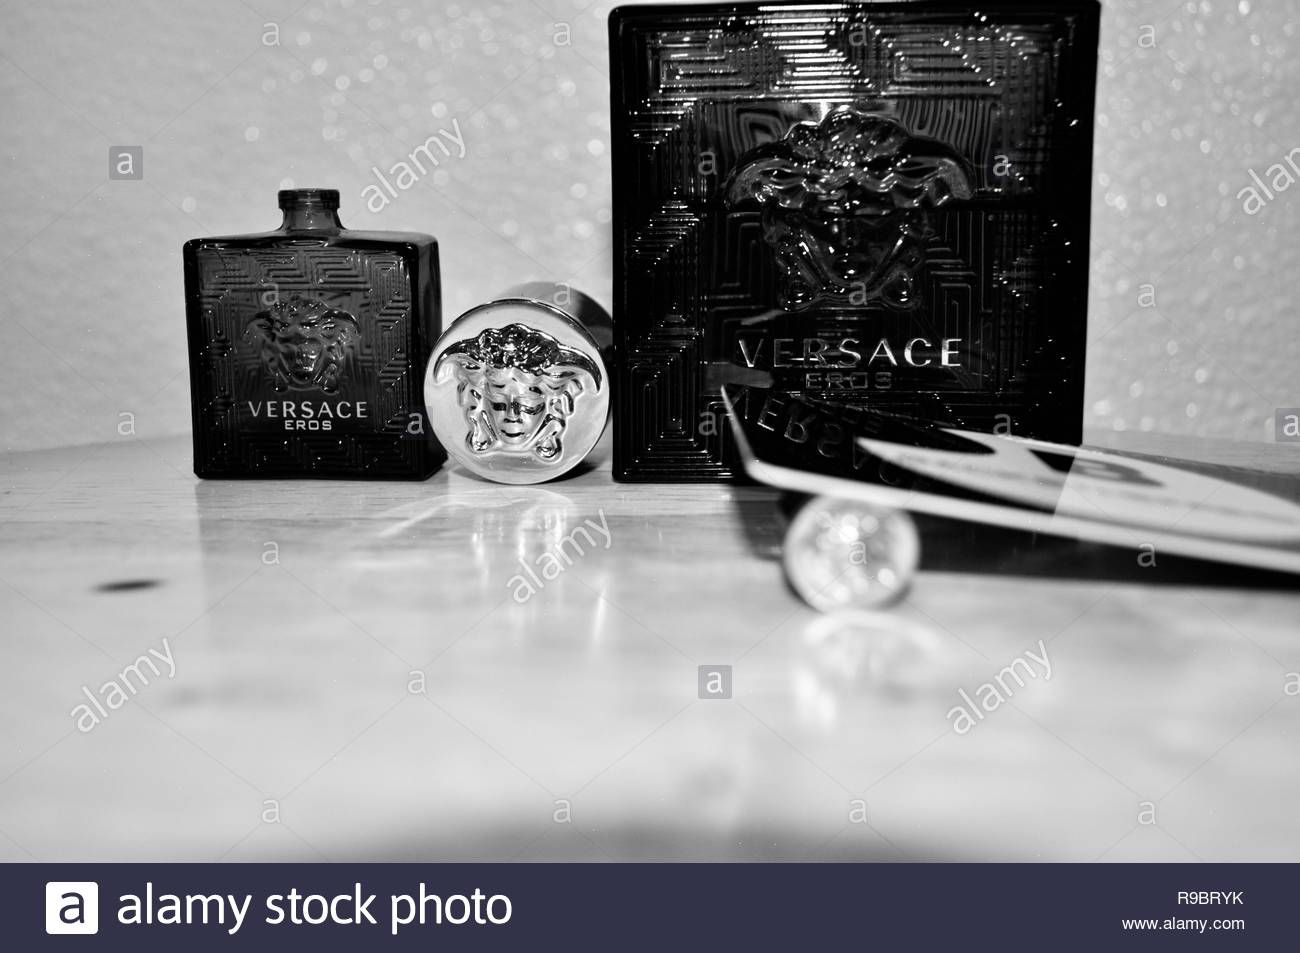 Download This Stock Image Duronn James R9bryk From Alamy S Library Of Millions Of High Resolution Stock Photos Illustration In 2020 Stock Photos Photo Moon Meaning